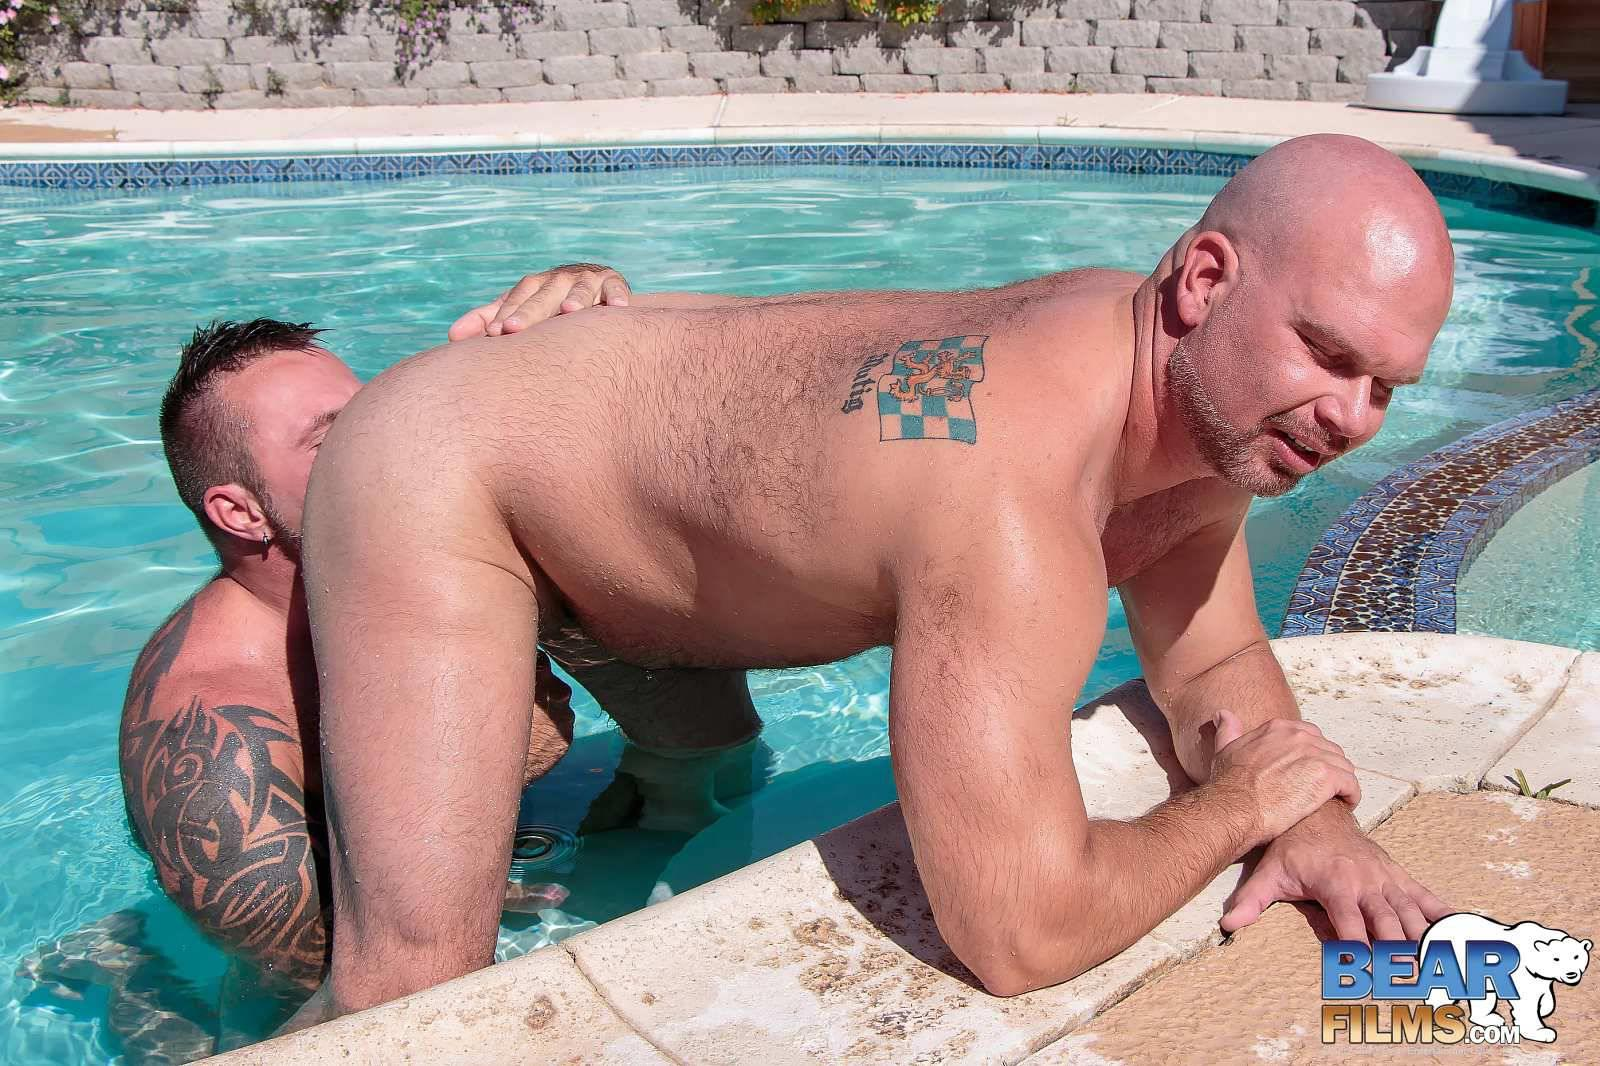 Bear Films Marc Angelo and Wade Cashen Hairy Muscle Bears Fucking Bearback Amateur Gay Porn 10 Hairy Muscle Bears Fucking Bareback At The Pool